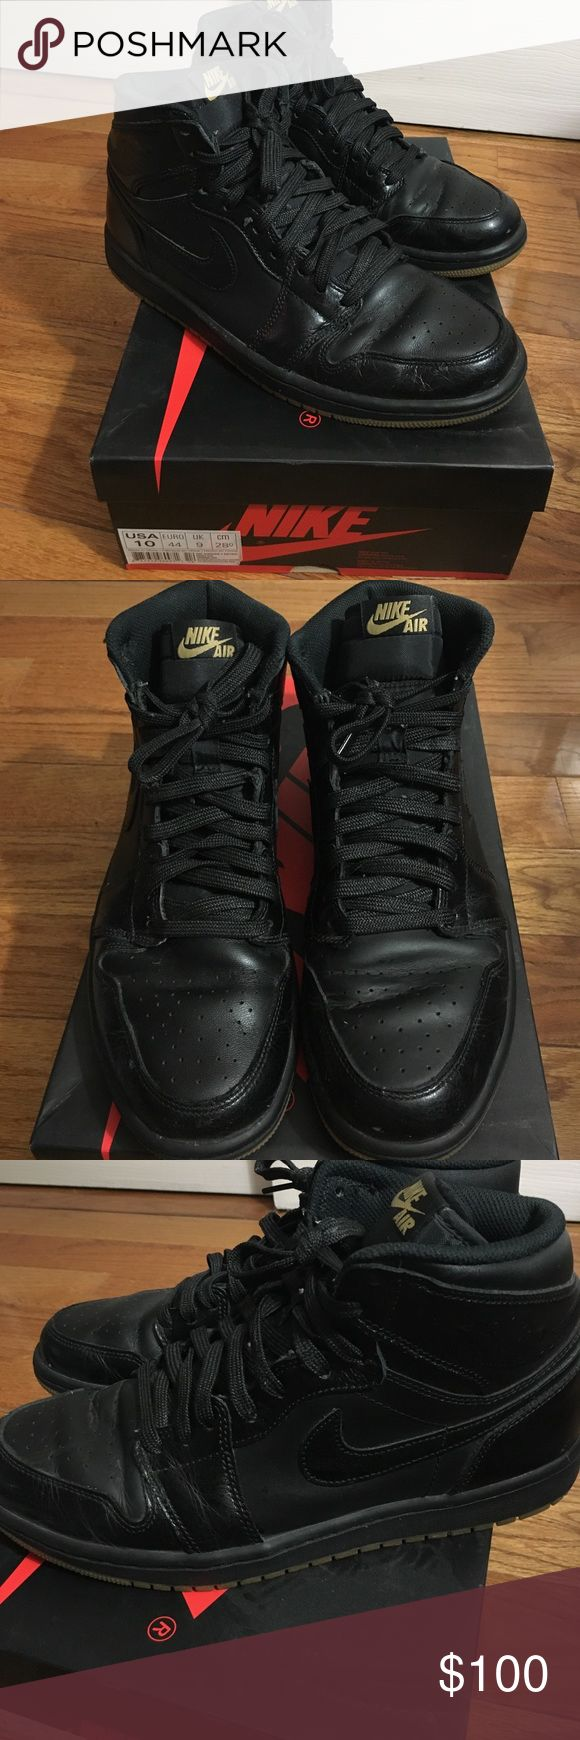 🔥ATTN SNEAKERHEADS - JORDAN 1s RETRO 🔥 🔥ATTN SNEAKERHEADS - JORDAN 1s RETRO 🔥 - these have been worn compared to all my other listings! However, like everything else I sell nothing is in bad condition! These actually have minimal signs of wear and are still hard to get in this condition! So if you're a sneaker head and appreciate these bad boys, submit an offer! I ONLY SELL ON POSH!!! No low bids Jordan Shoes Sneakers